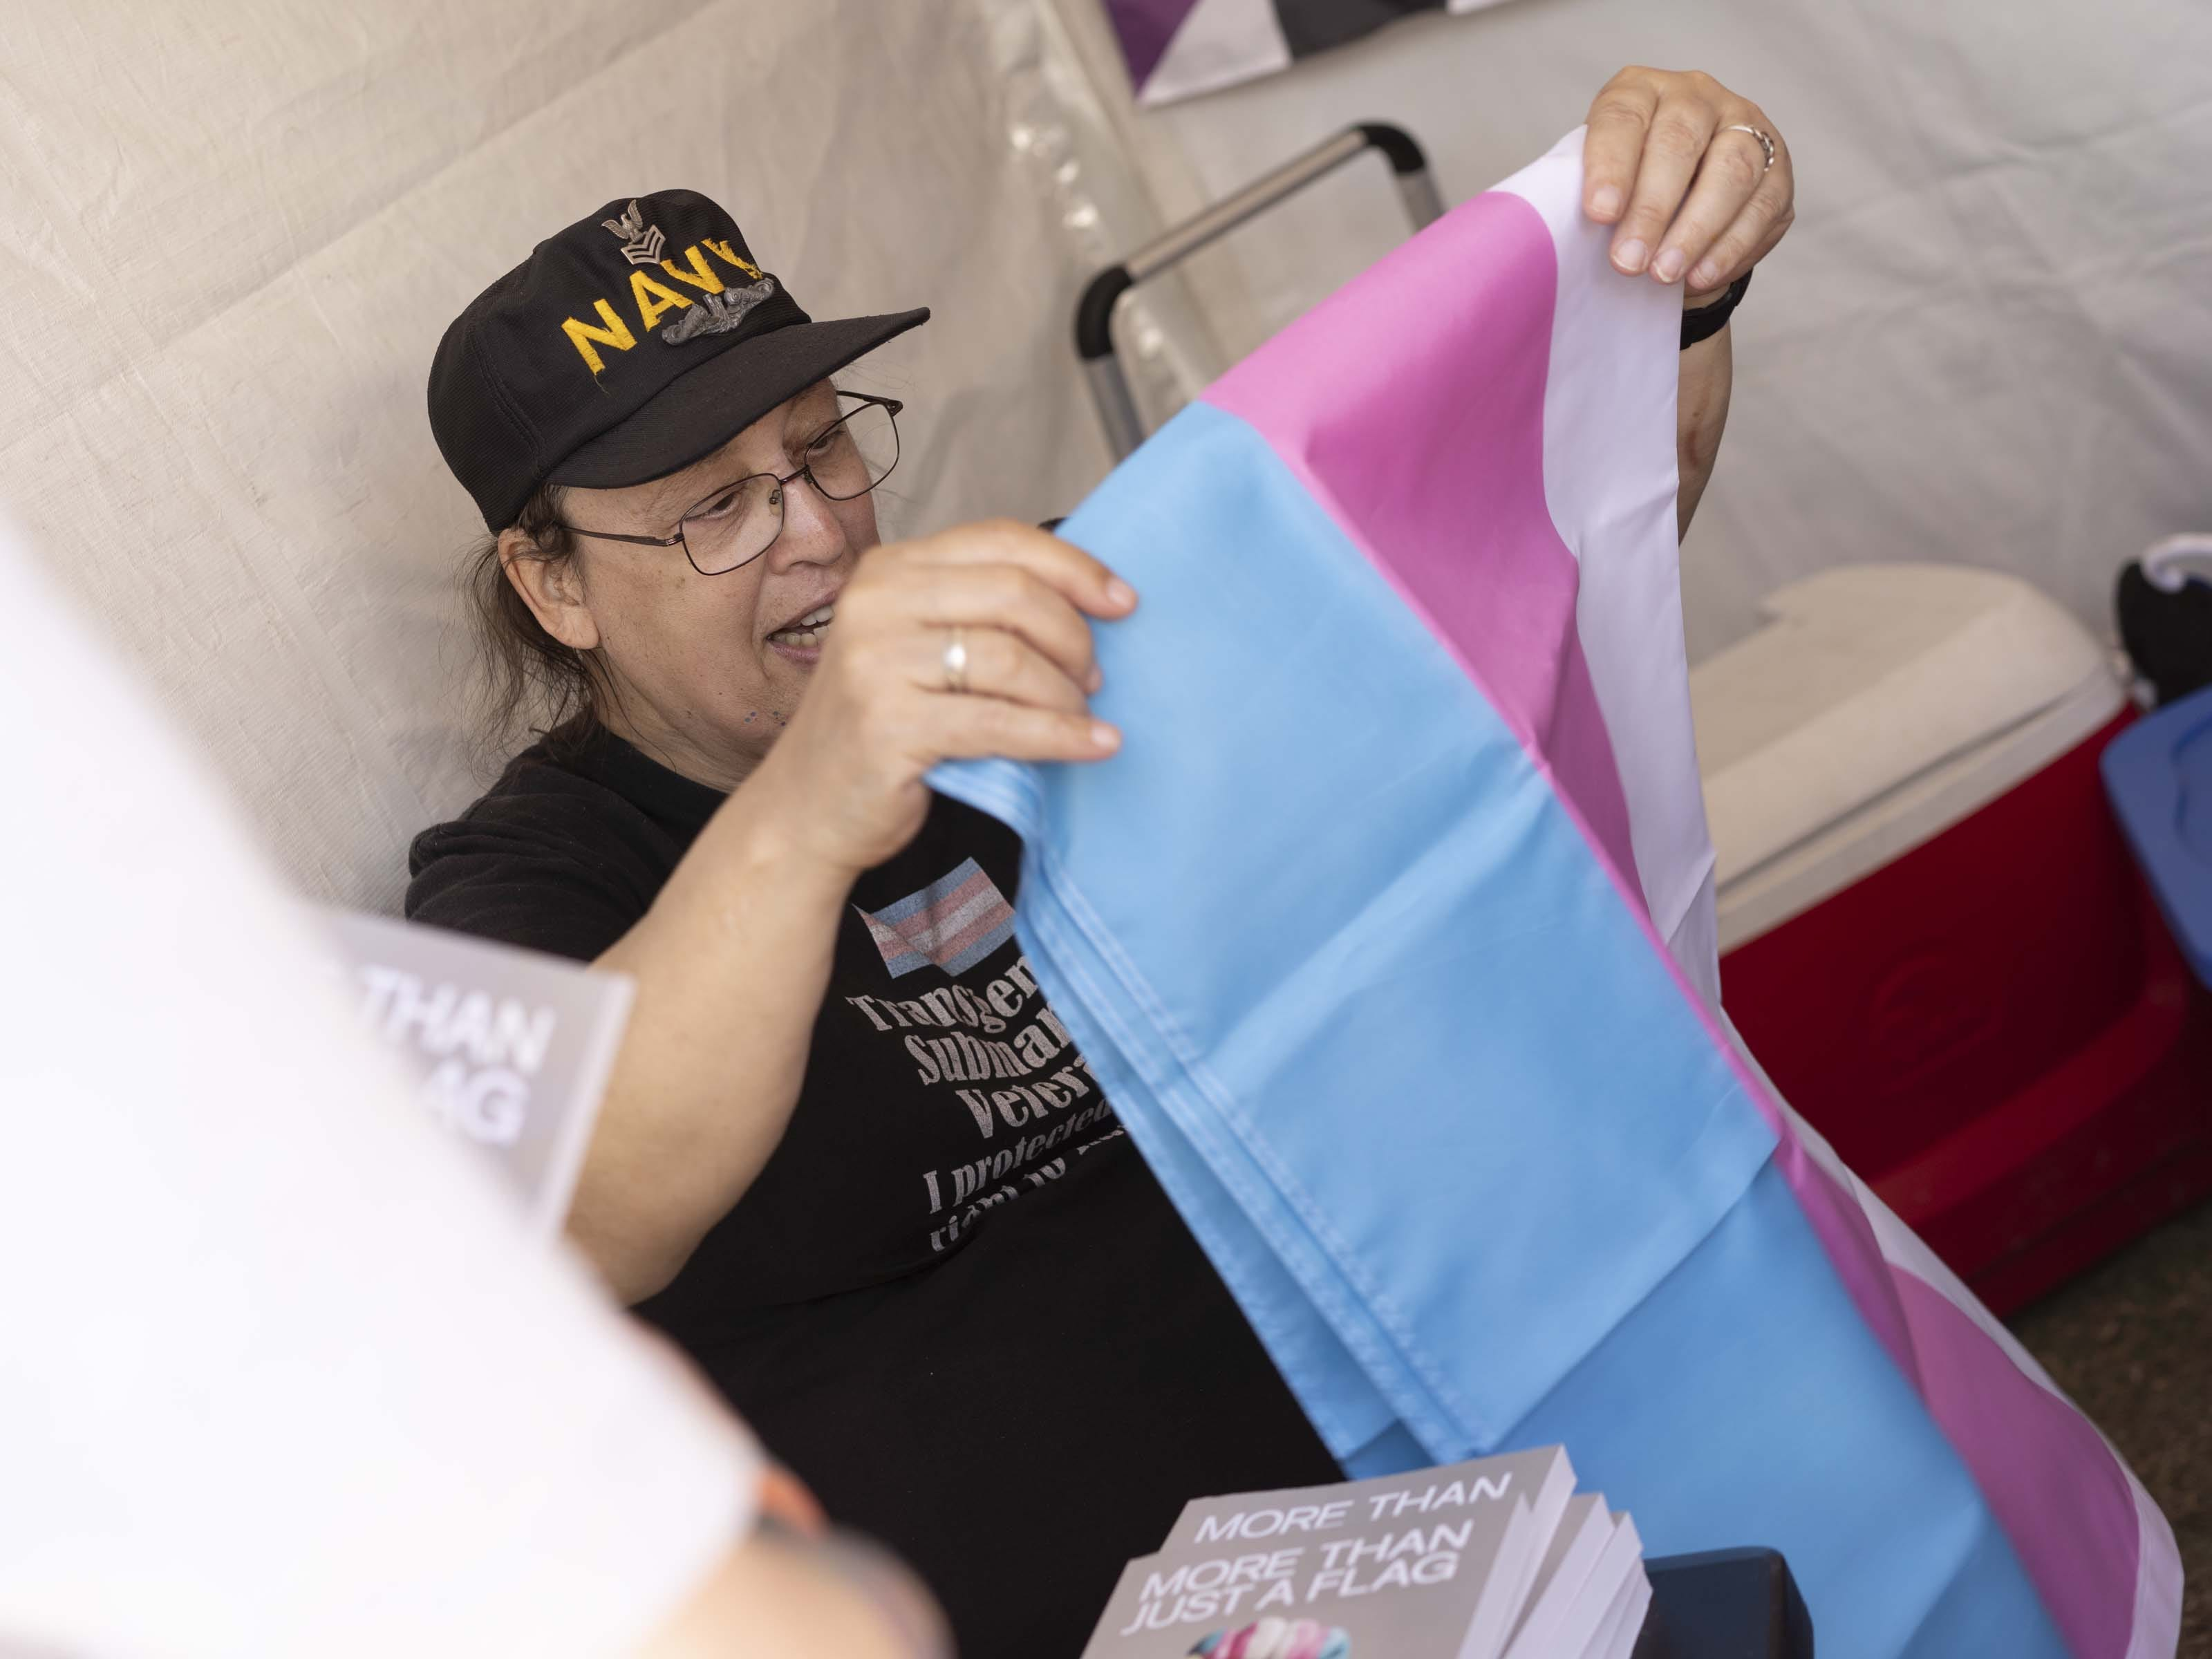 Monica Helms, who created the transgender pride  flag, signs books for fans during Phoenix Pride at Steele Indian School Park on Saturday, April 6, 2019.